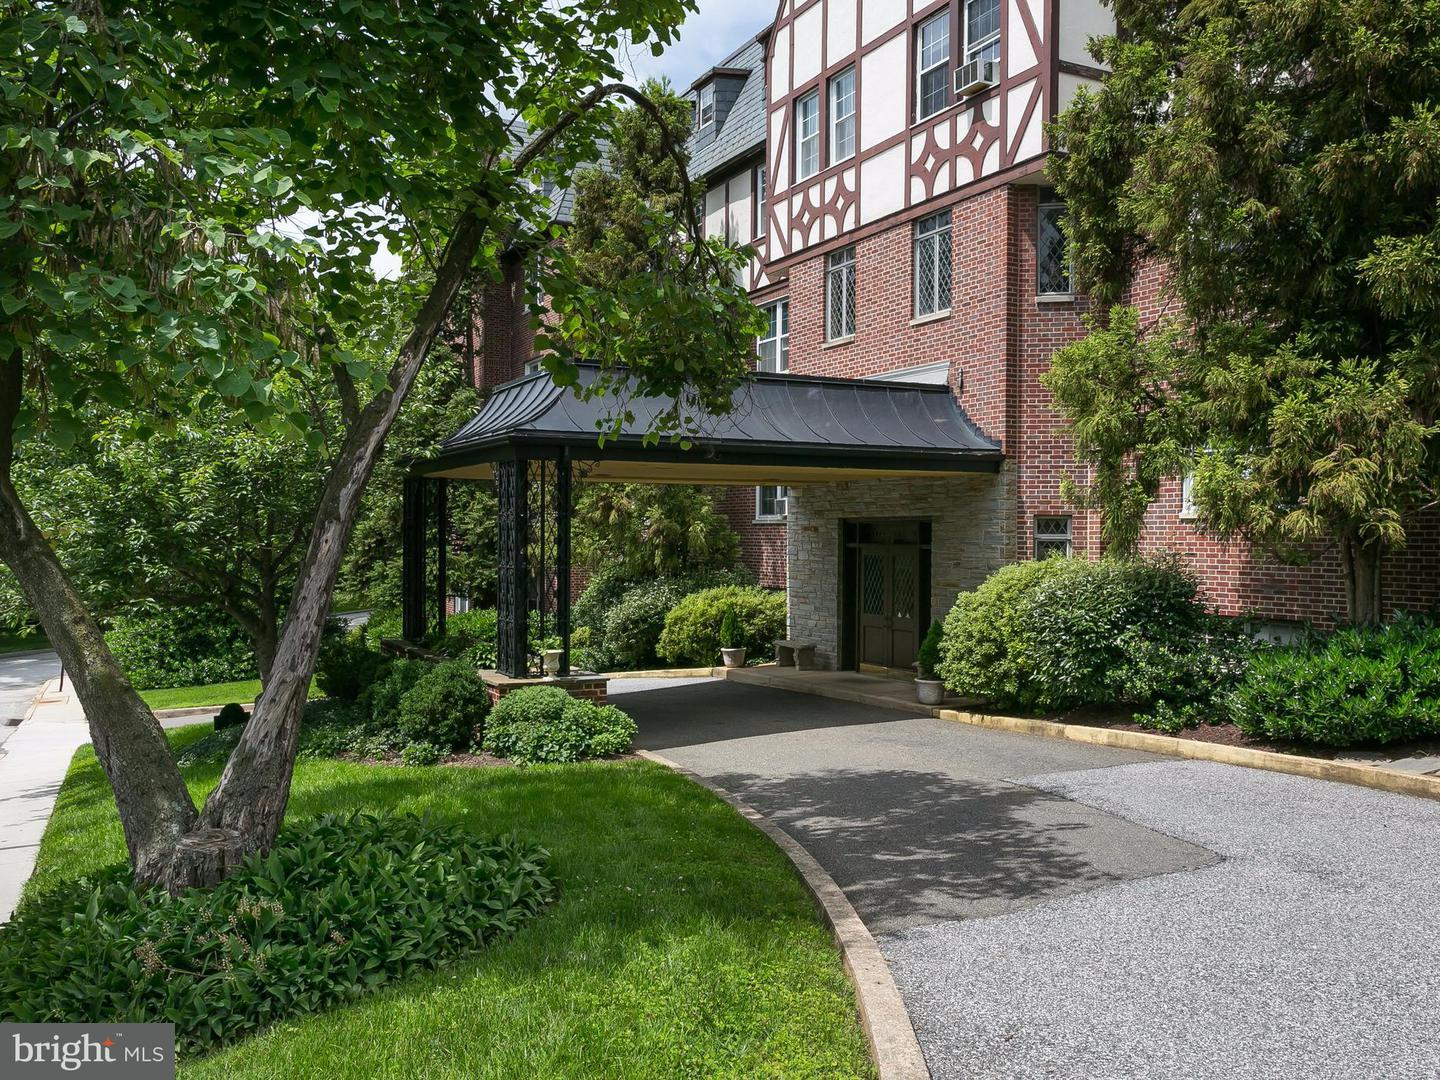 Other Residential for Rent at 310 Ridgemede Rd #104 Baltimore, Maryland 21210 United States